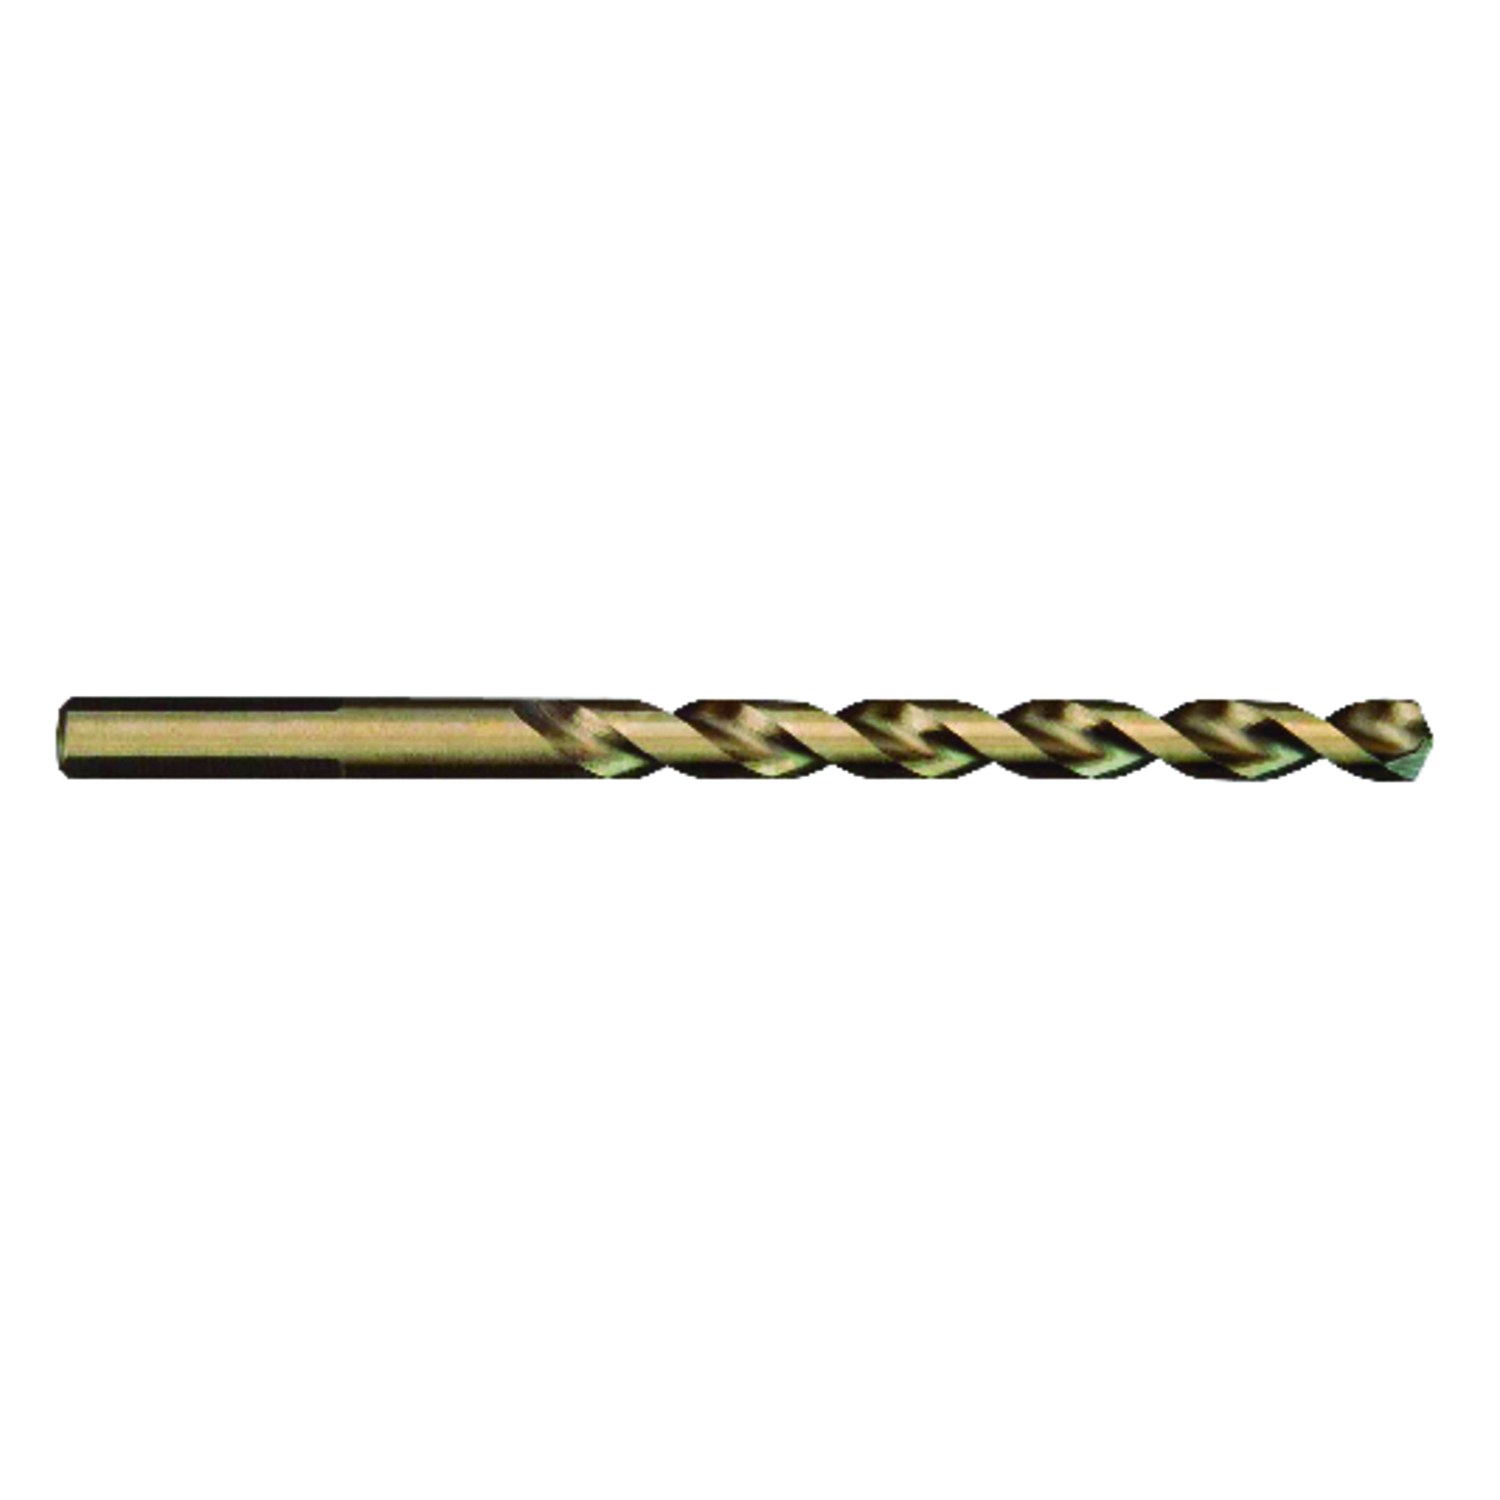 Milwaukee  RED HELIX  1/4 in. Dia. x 4 in. L Drill Bit  THUNDERBOLT  1 pc. Cobalt Steel  3-Flat Shan